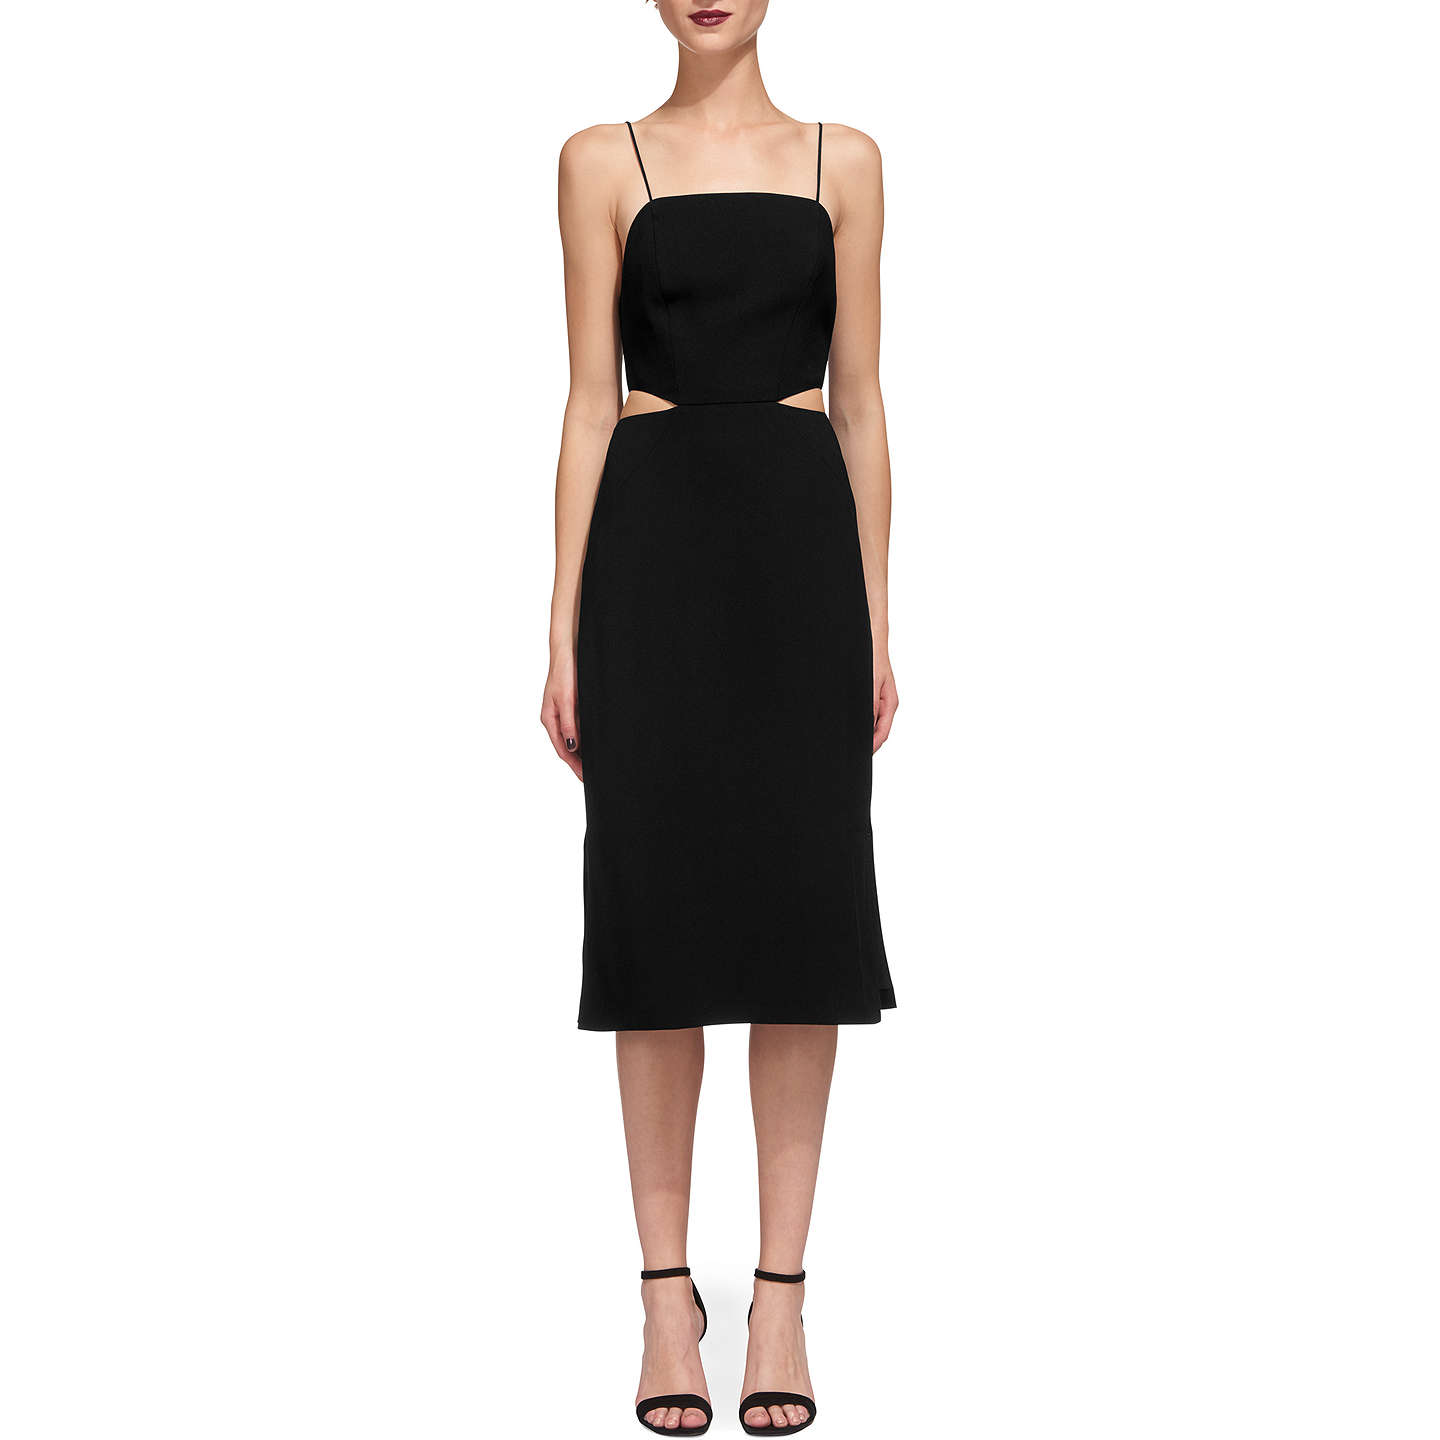 BuyWhistles Rossi Strappy Dress, Black, 12 Online at johnlewis.com